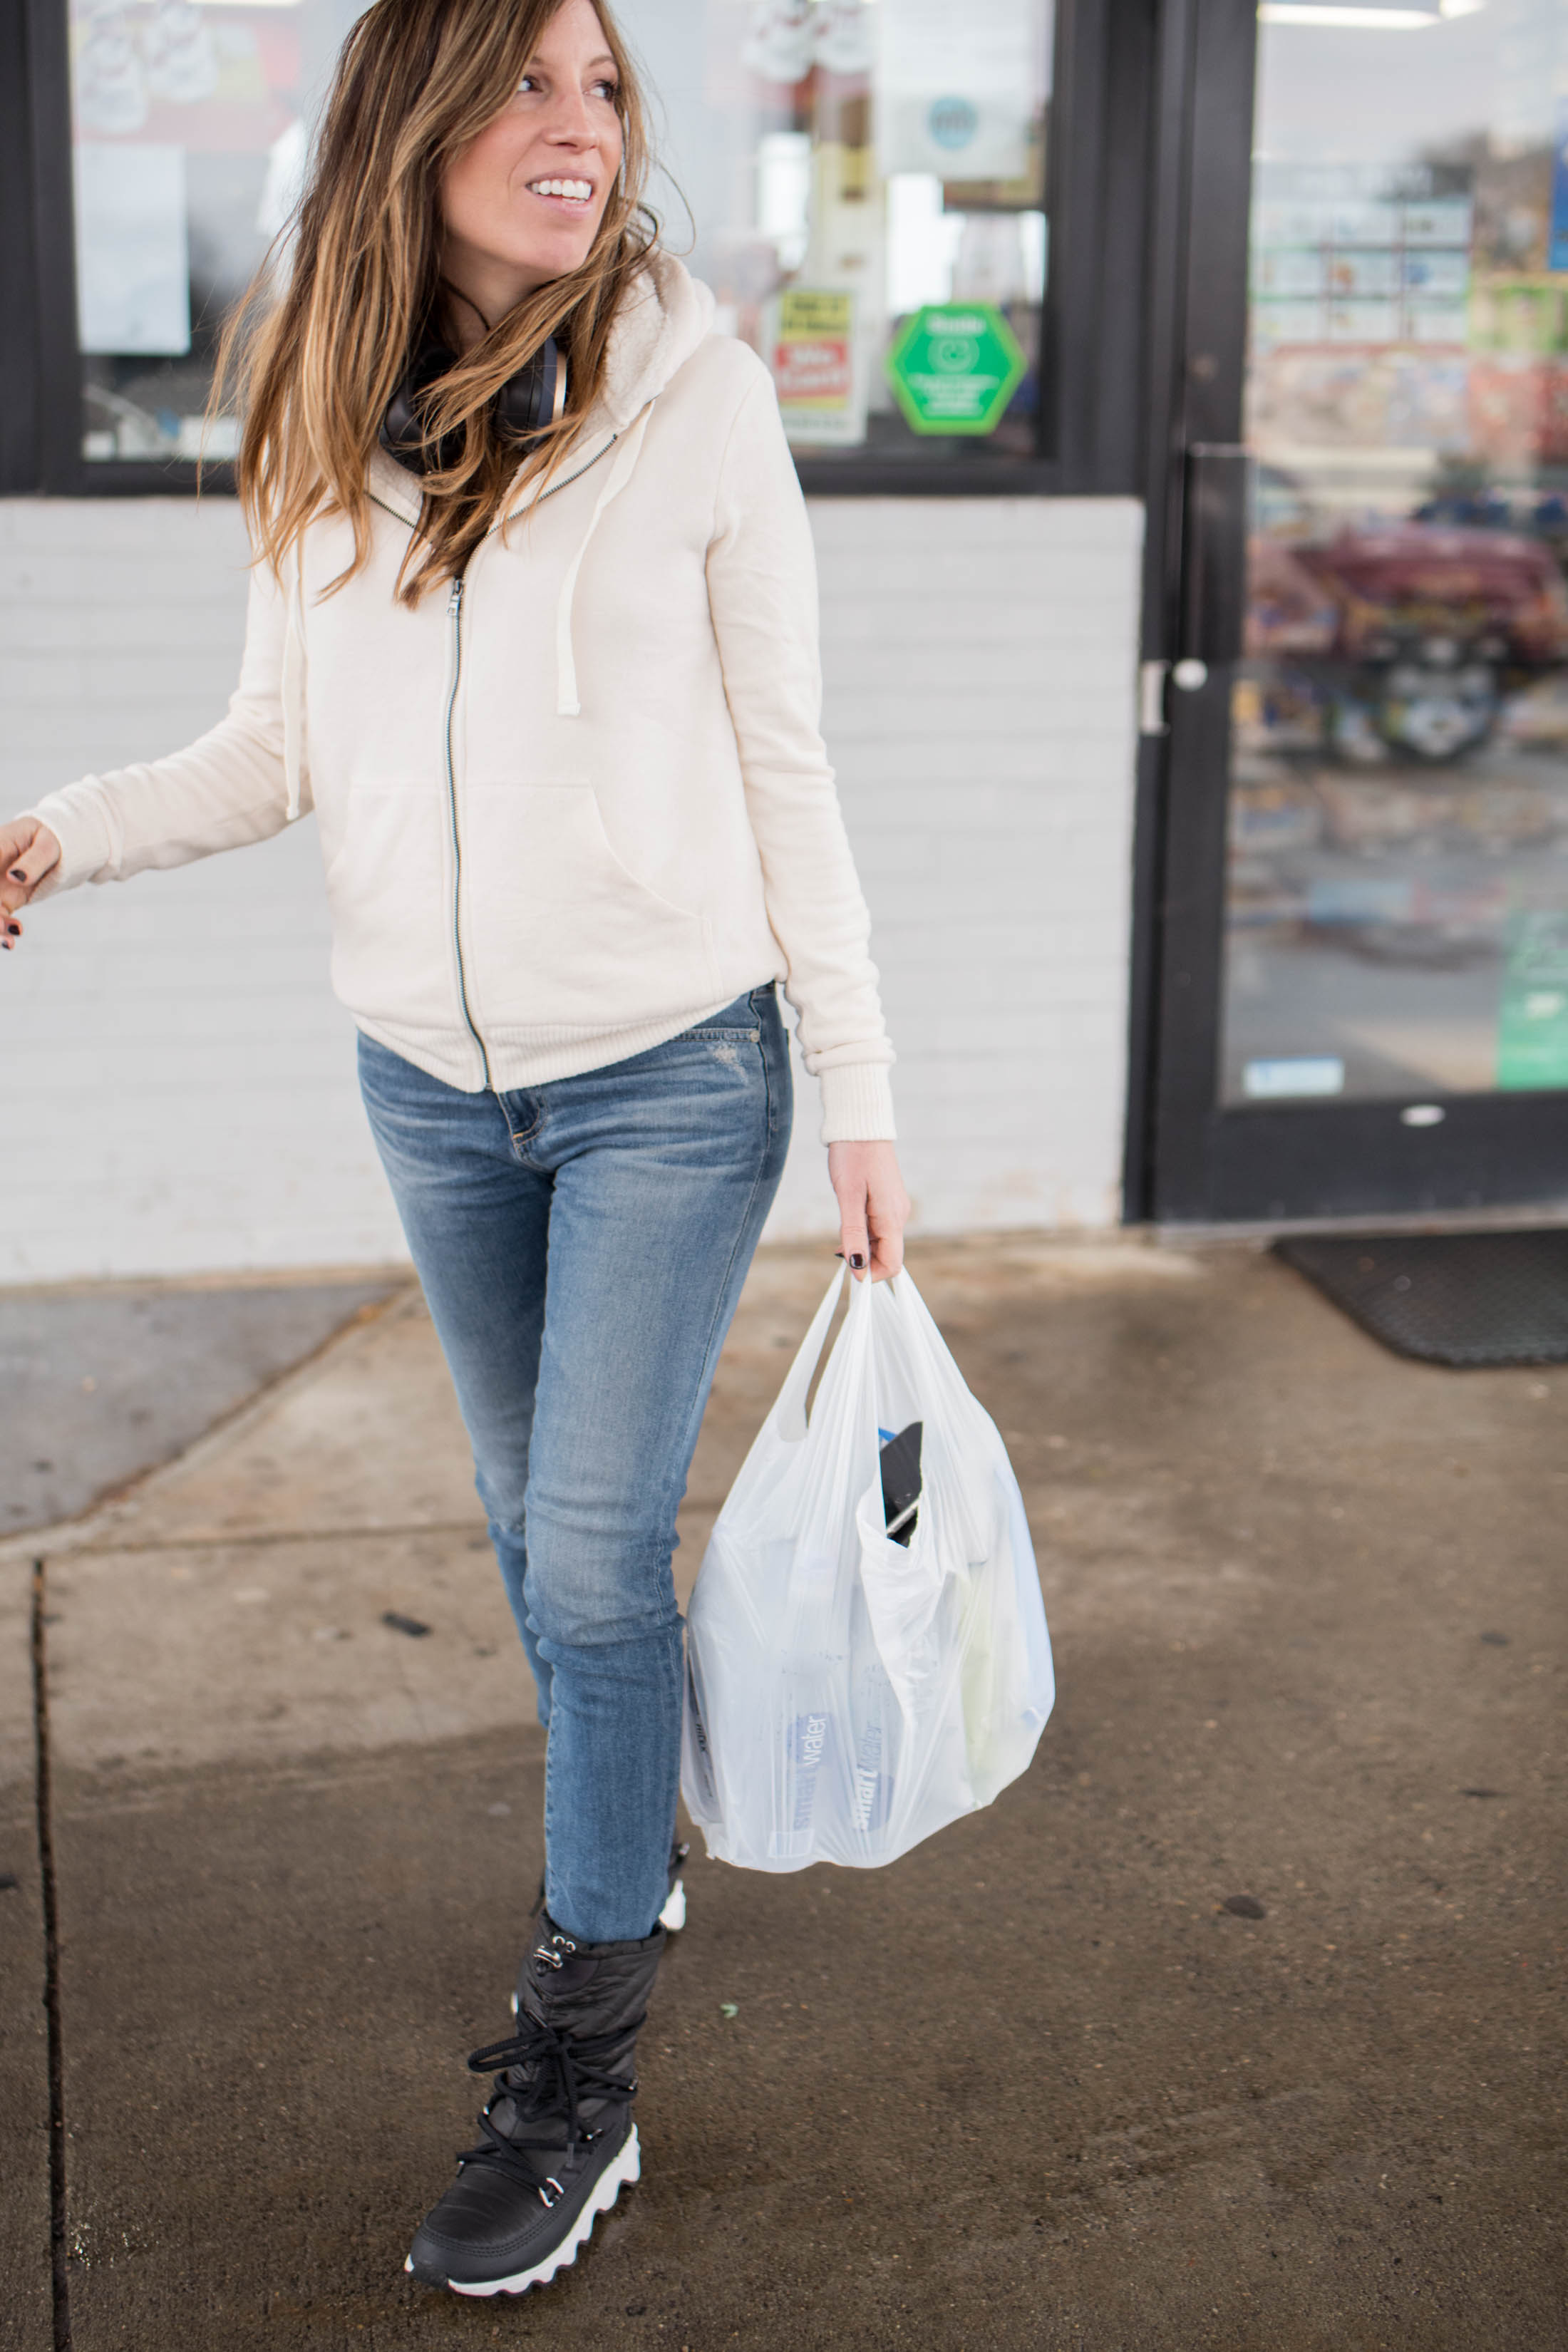 Current situation: OBSESSED with Bobeau & their super-soft pieces perfect for layering. Find out why your go-to outfit requires this hoodie & this top.